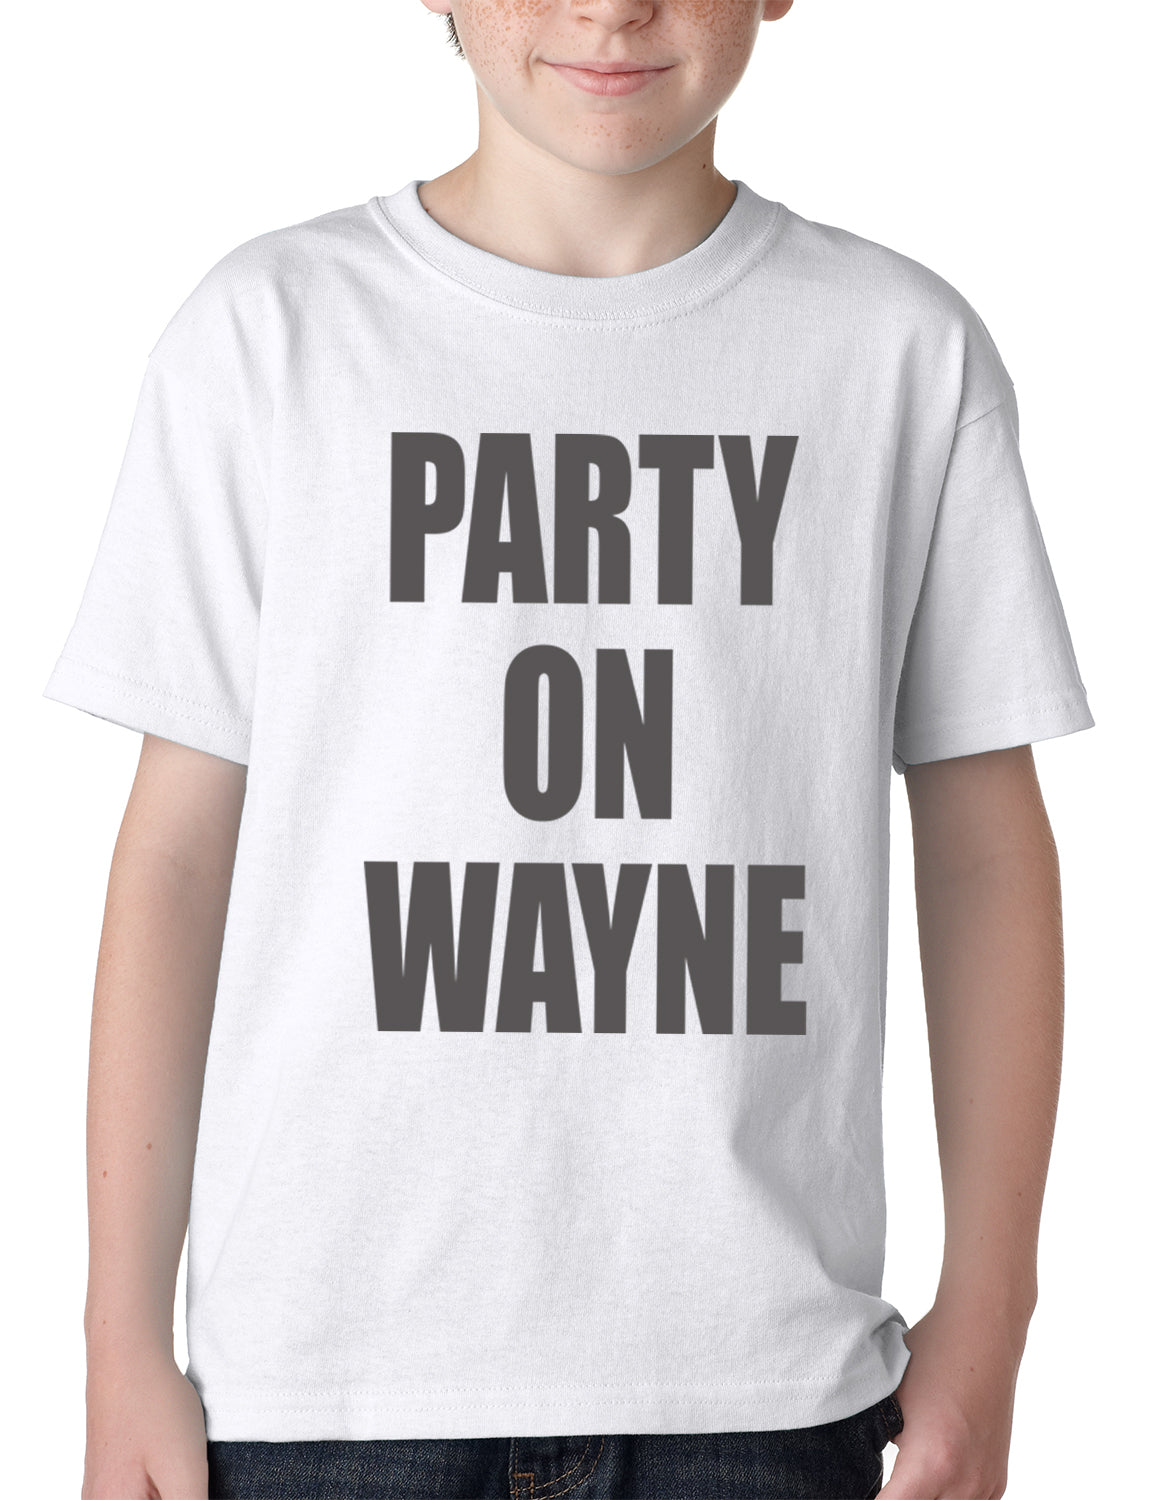 Party On Wayne Kids T-shirt